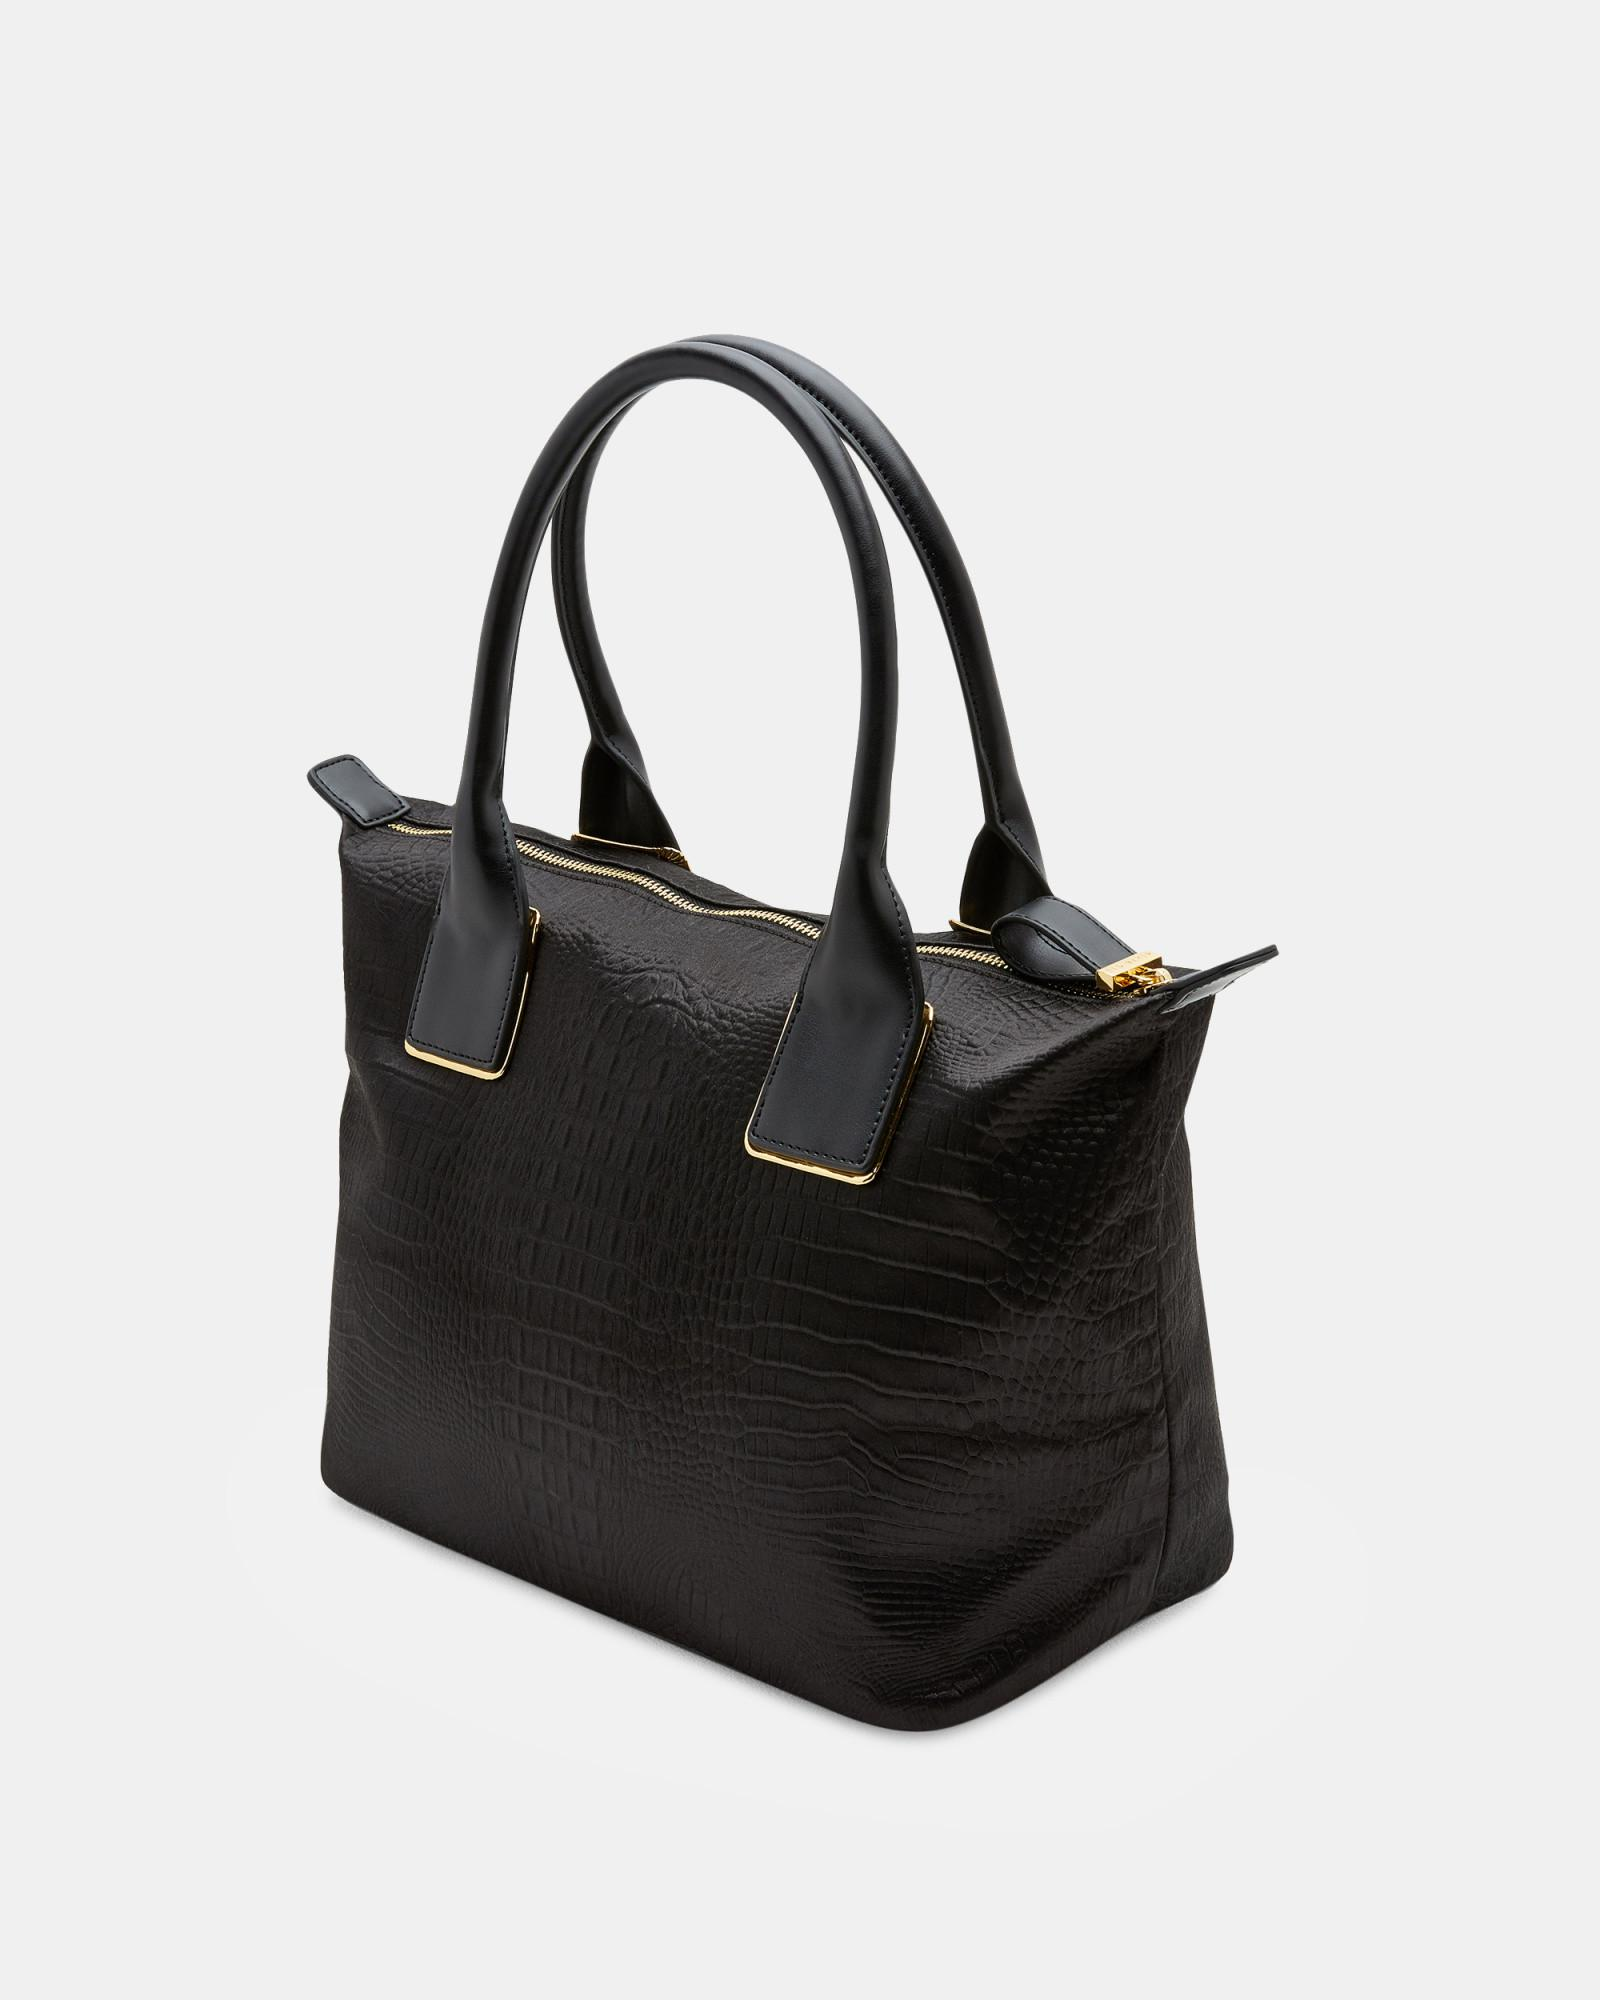 Ted Baker Exotic Small Tote Bag in Black